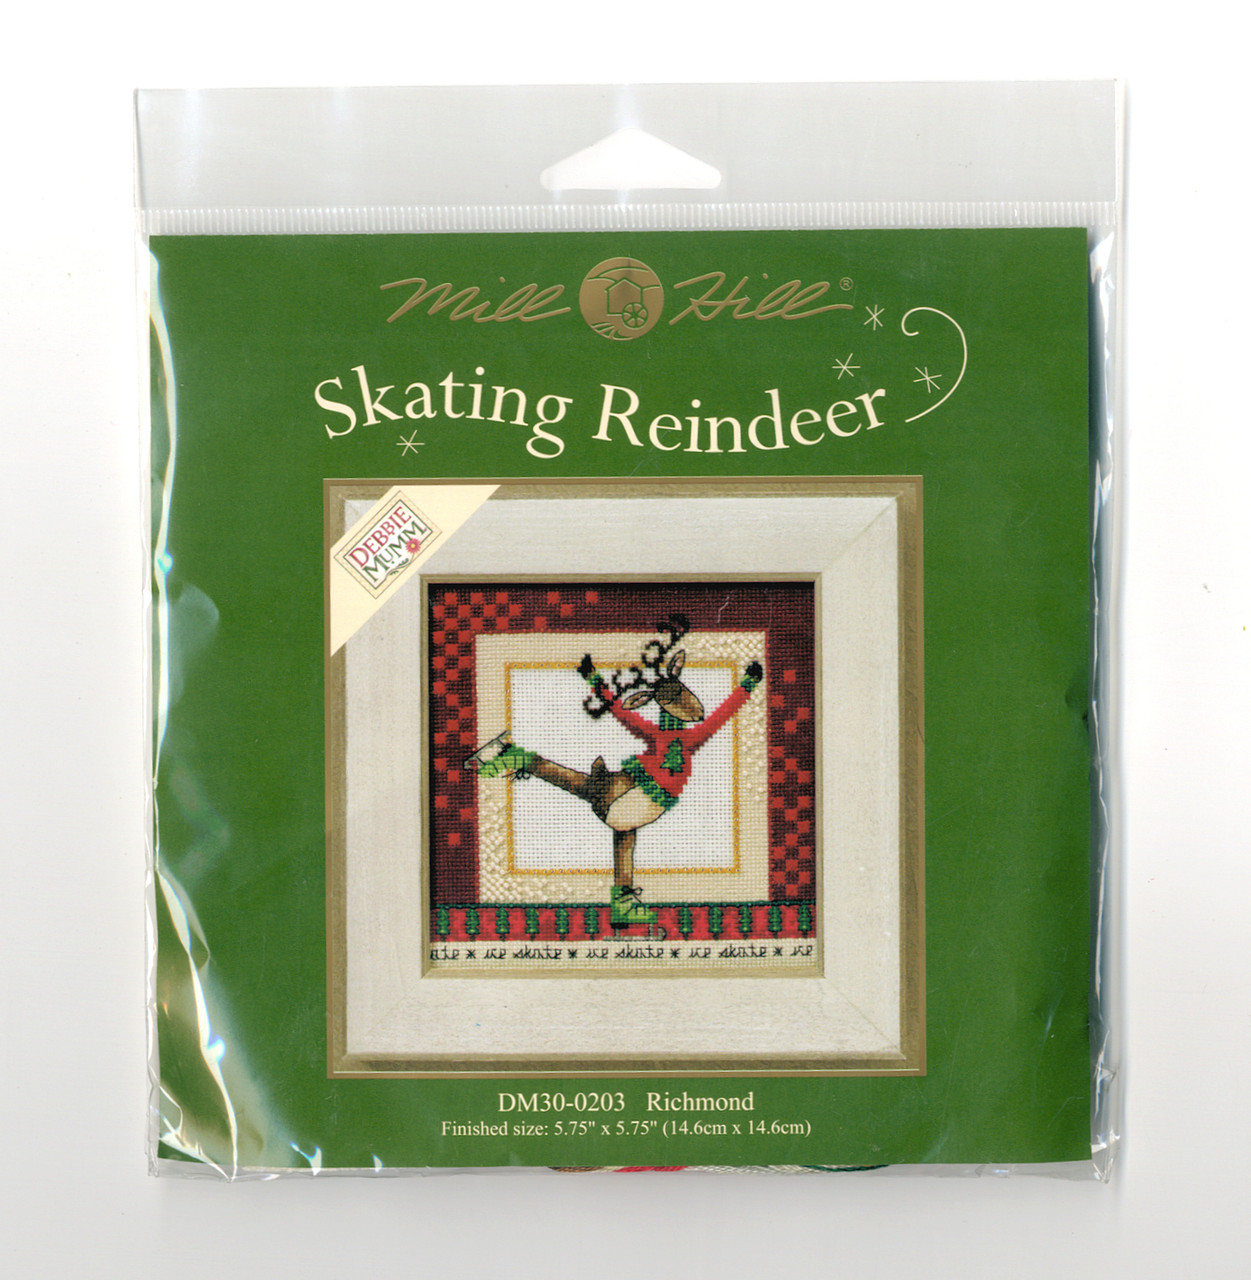 2010 Mill Hill Debbie Mumm Skating Reindeer - Richmond